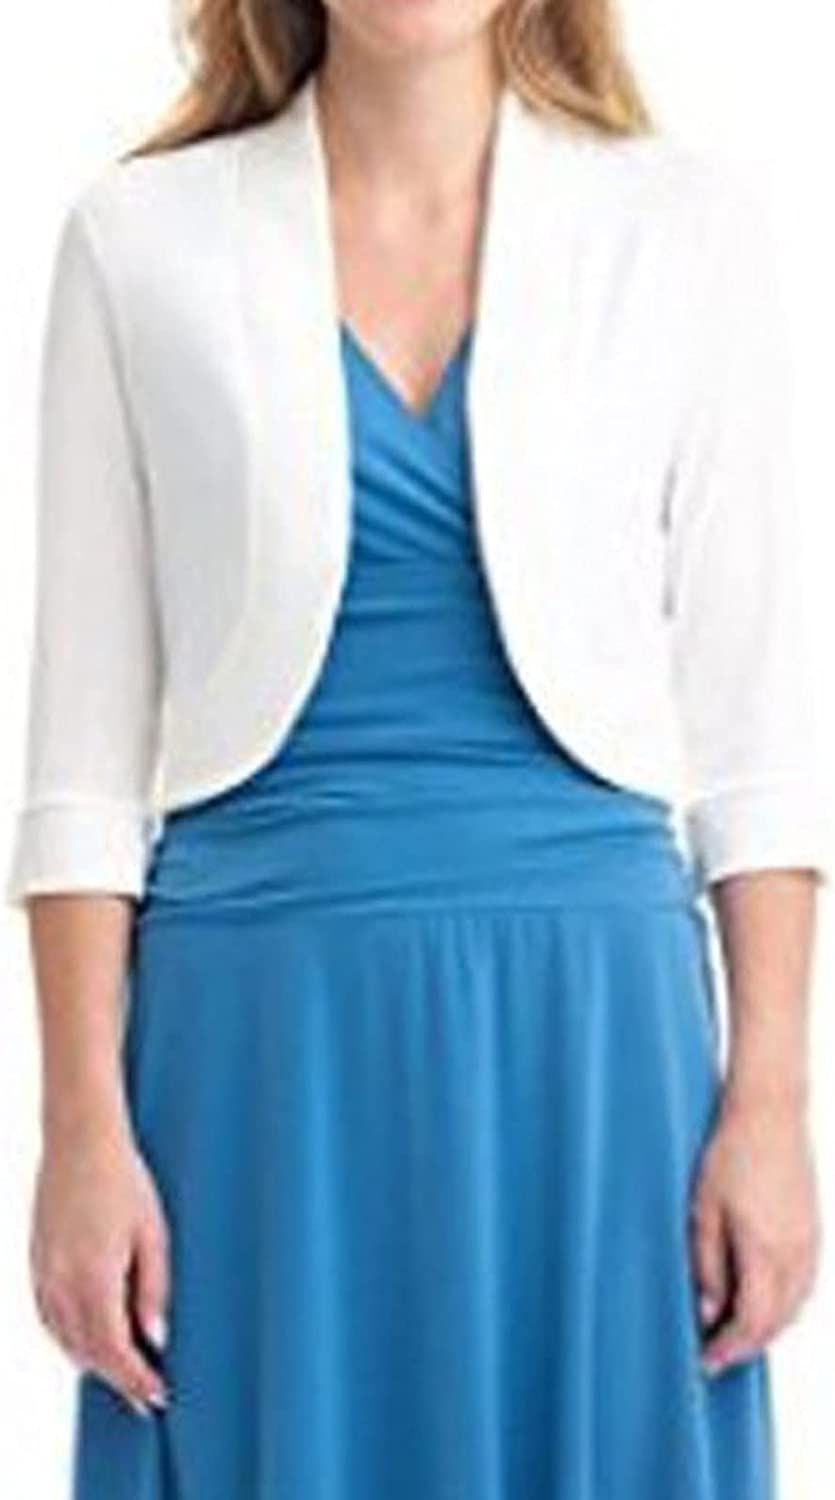 SSSSAl Women's Cropped Cardigan 3/4 Sleeve V-Neck Button Down Open Front Ribbed Knit Shrug Sweater